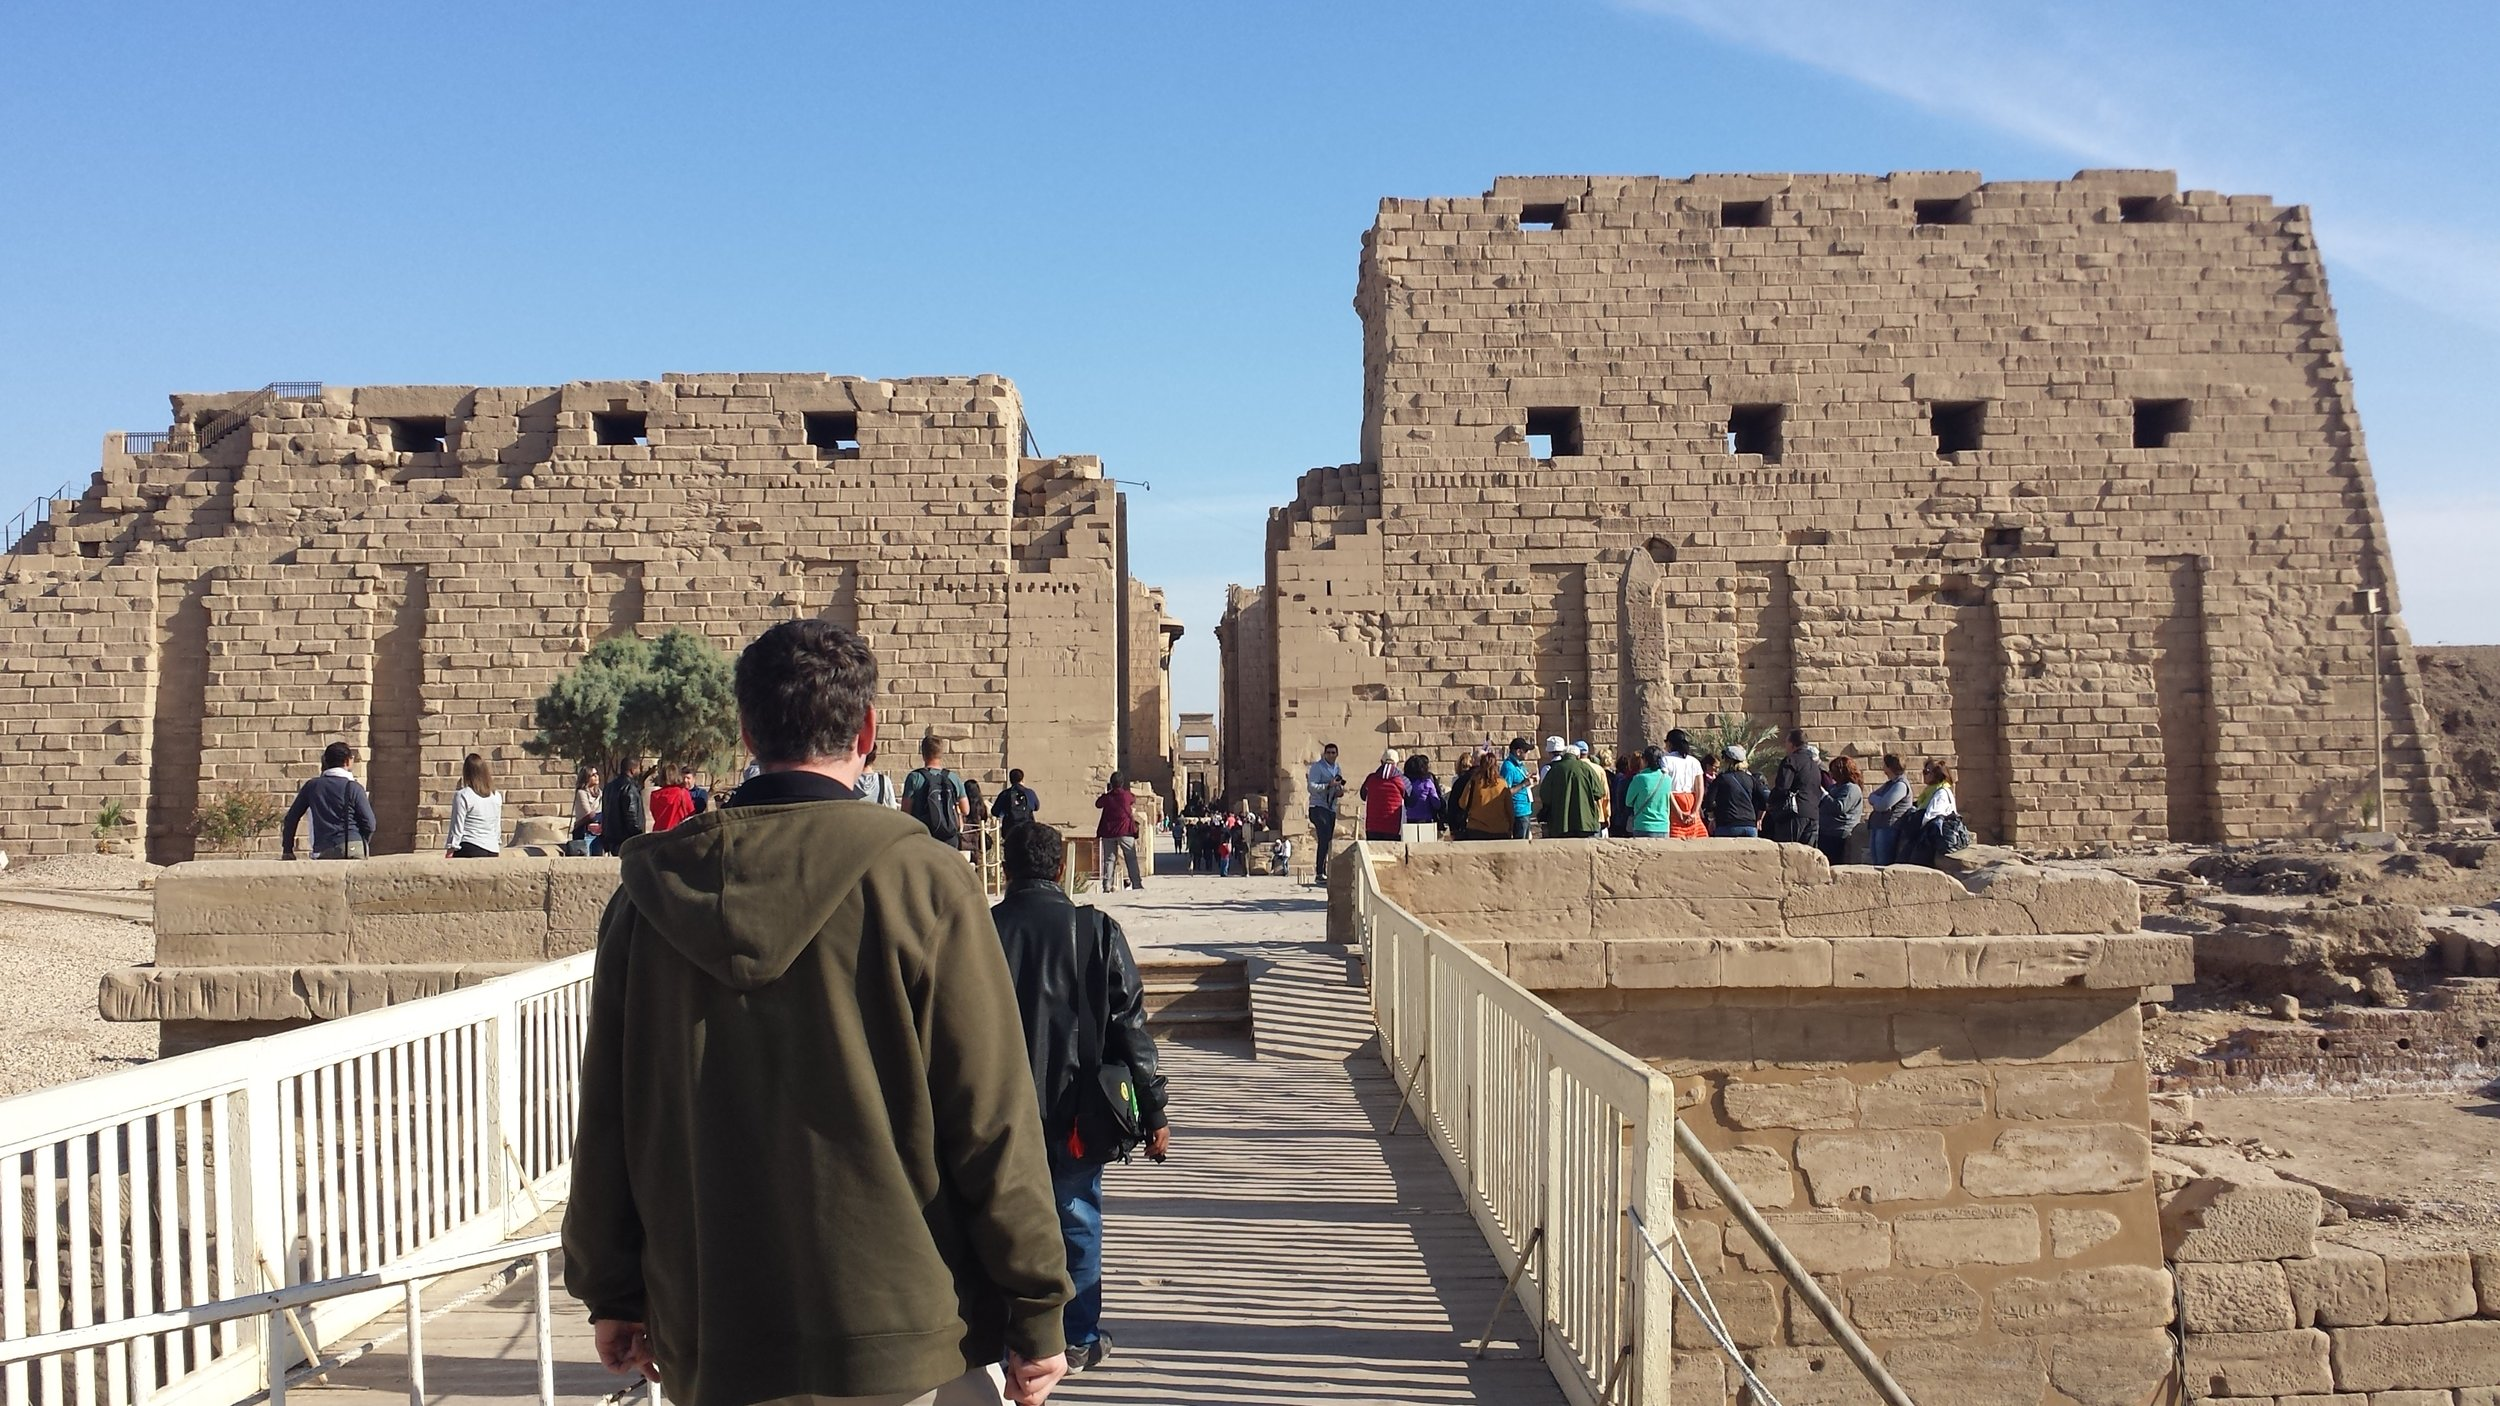 Dan and our guide approaching the entry to the Karnak temple complex and its unfinished pylons.